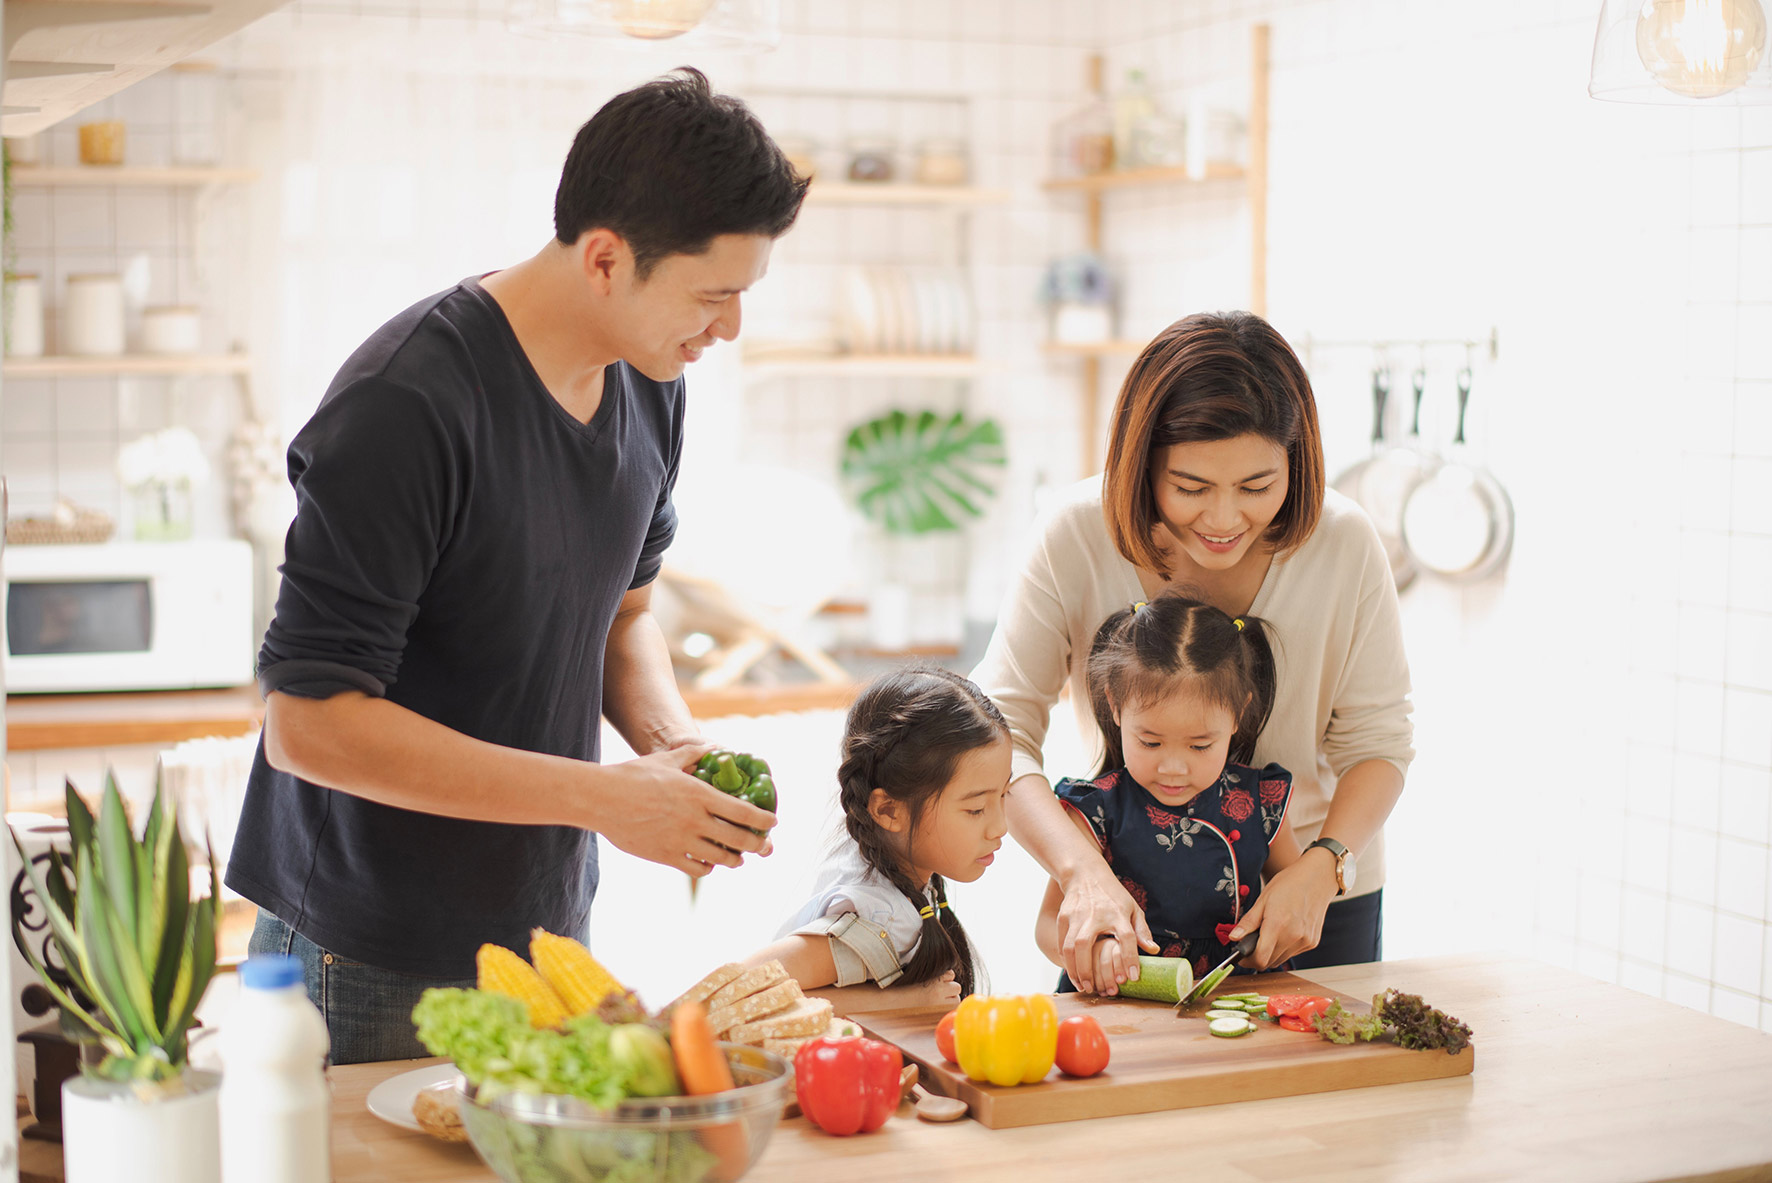 Healthy Living | Family preparing healthy meal for better imunity